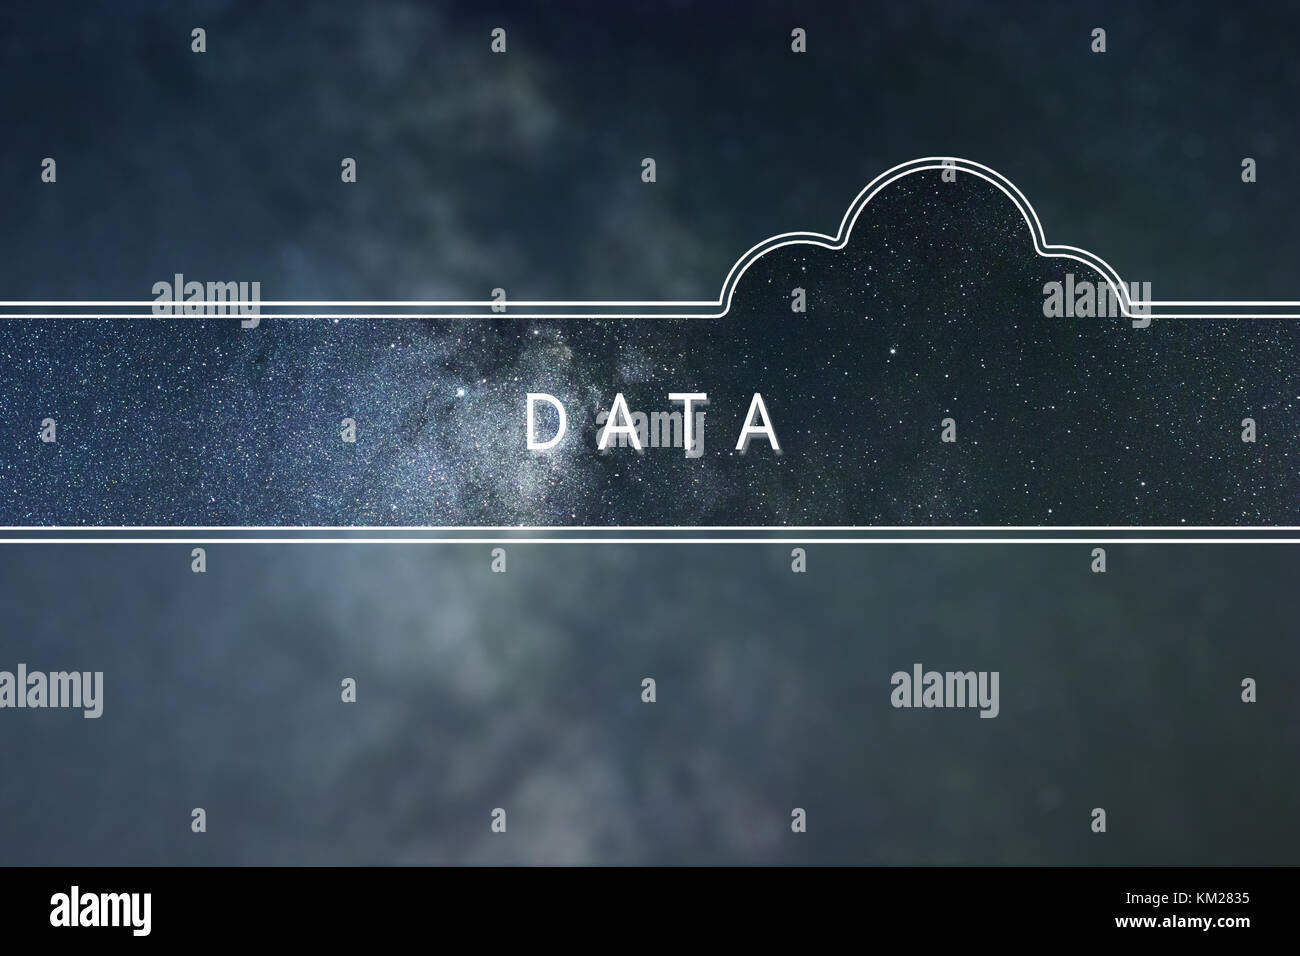 DATA word cloud Concept. Space background. - Stock Image